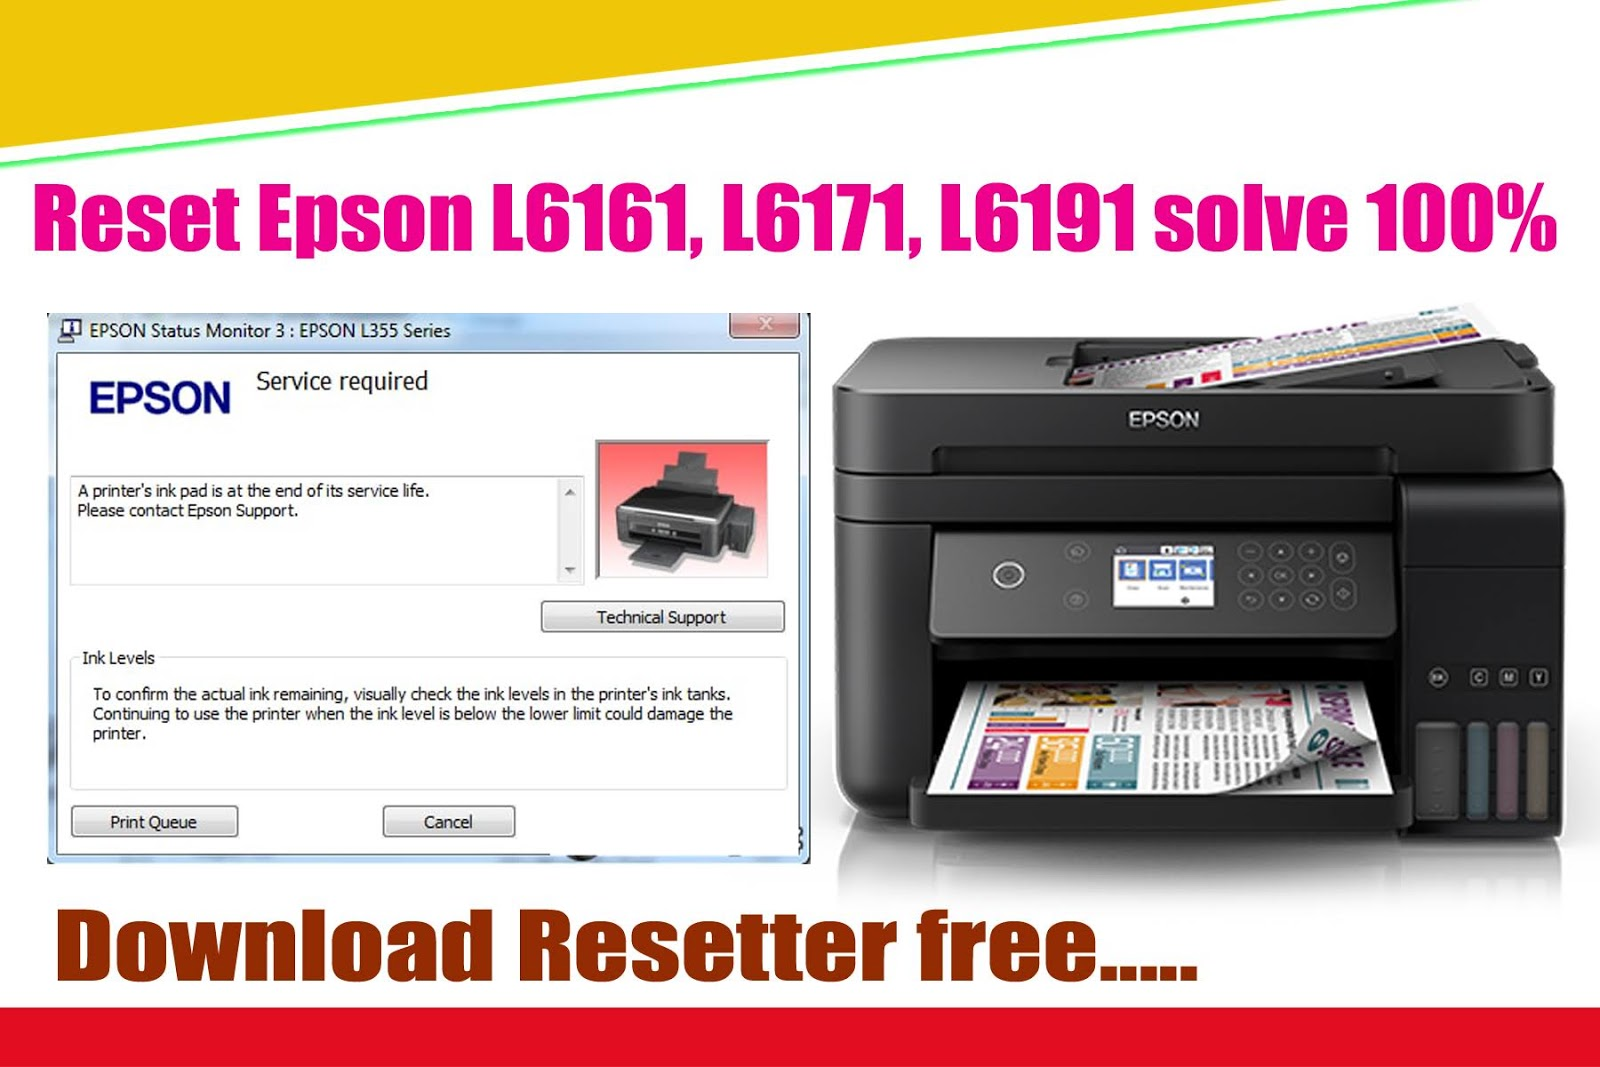 How to reset Epson L10, L10 & L10with Adjustment Program